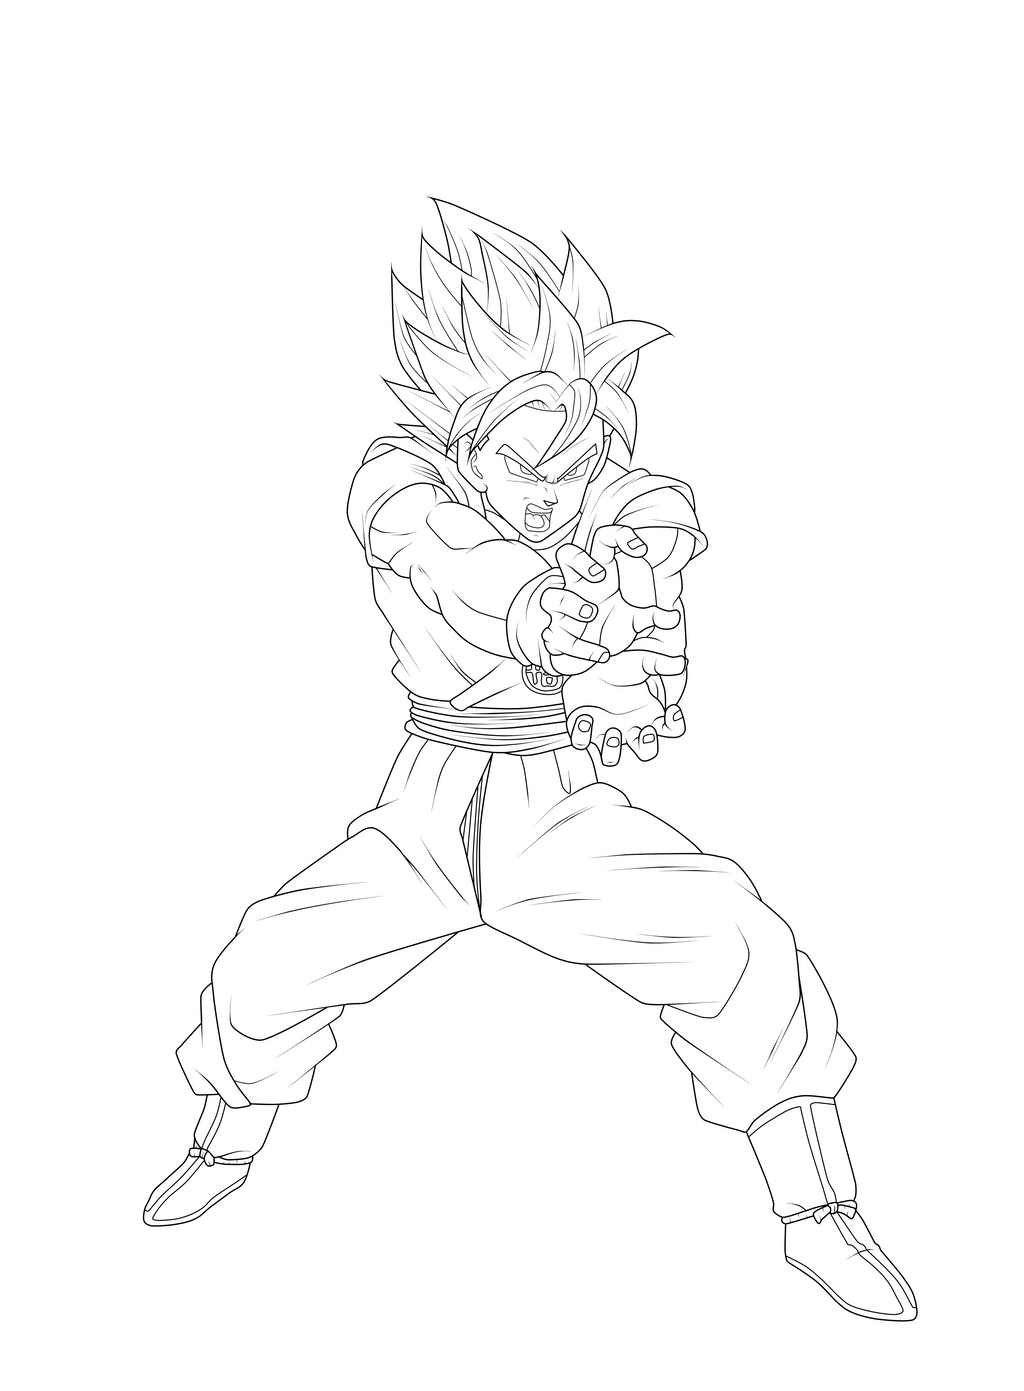 goku super saiyan blue kaioken lineart by frost z on deviantart